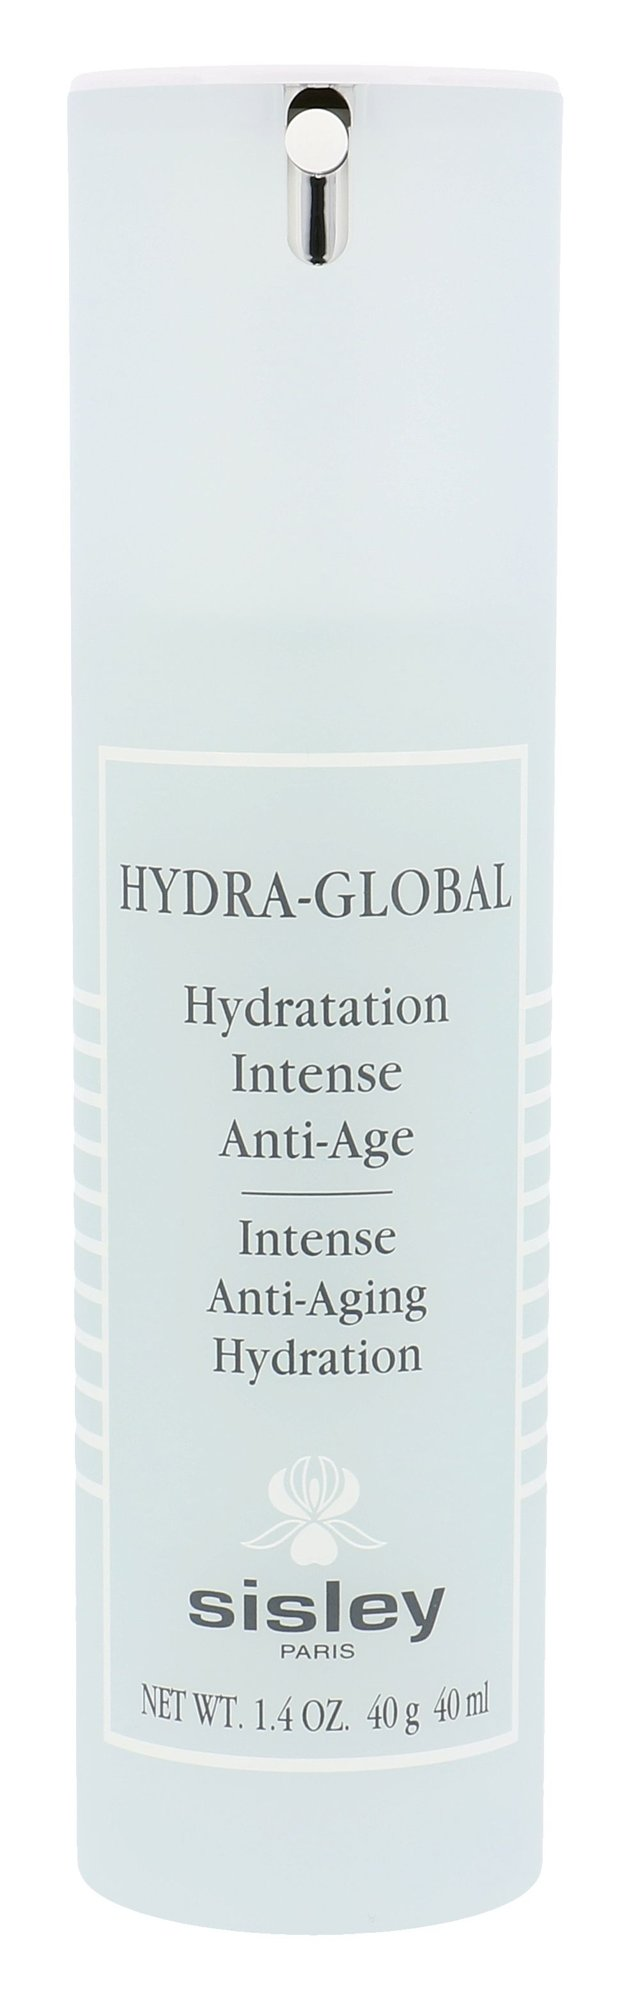 Sisley Hydra-Global  Pleťové sérum, W, 40 ml